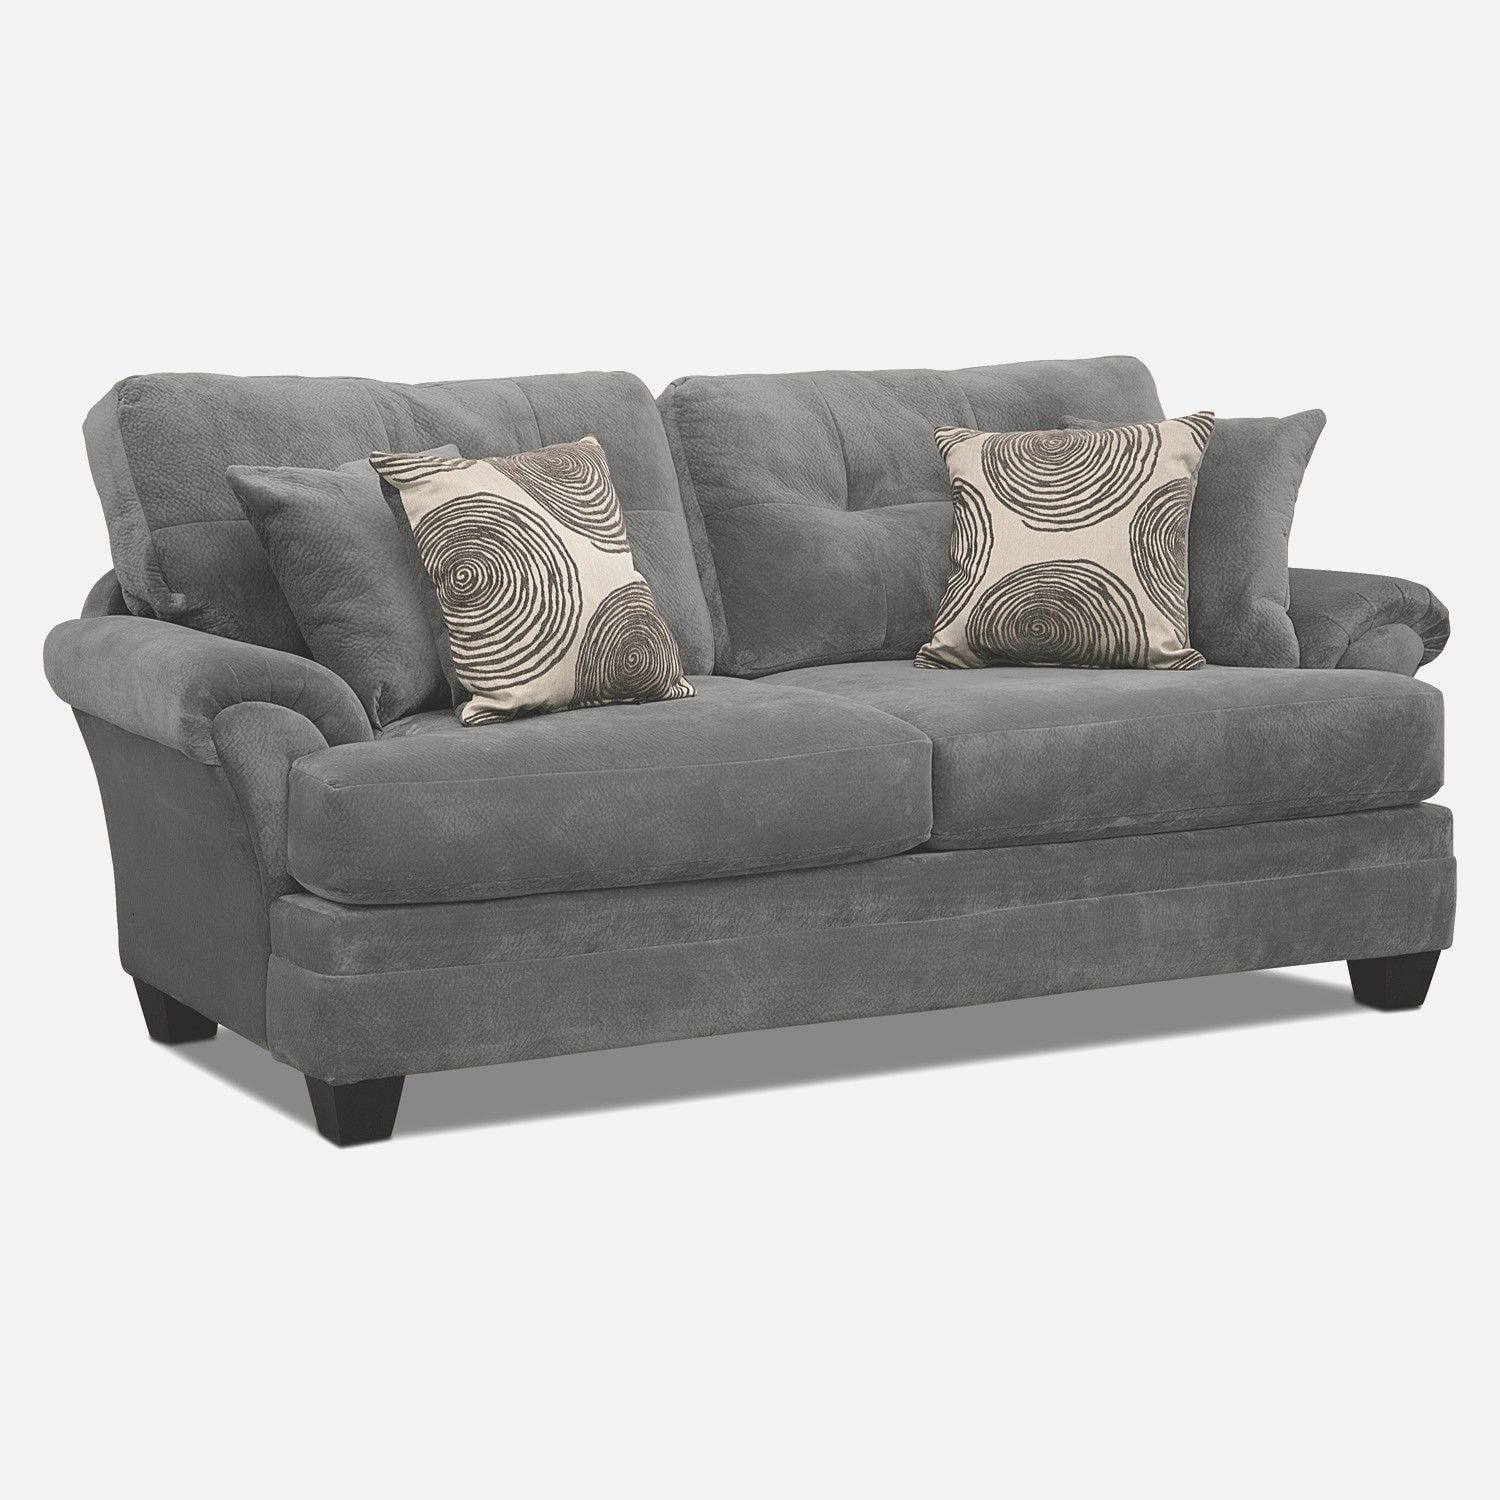 Sofas And More Knoxville Tn Sofas And More In Knoxville Tn Sofas